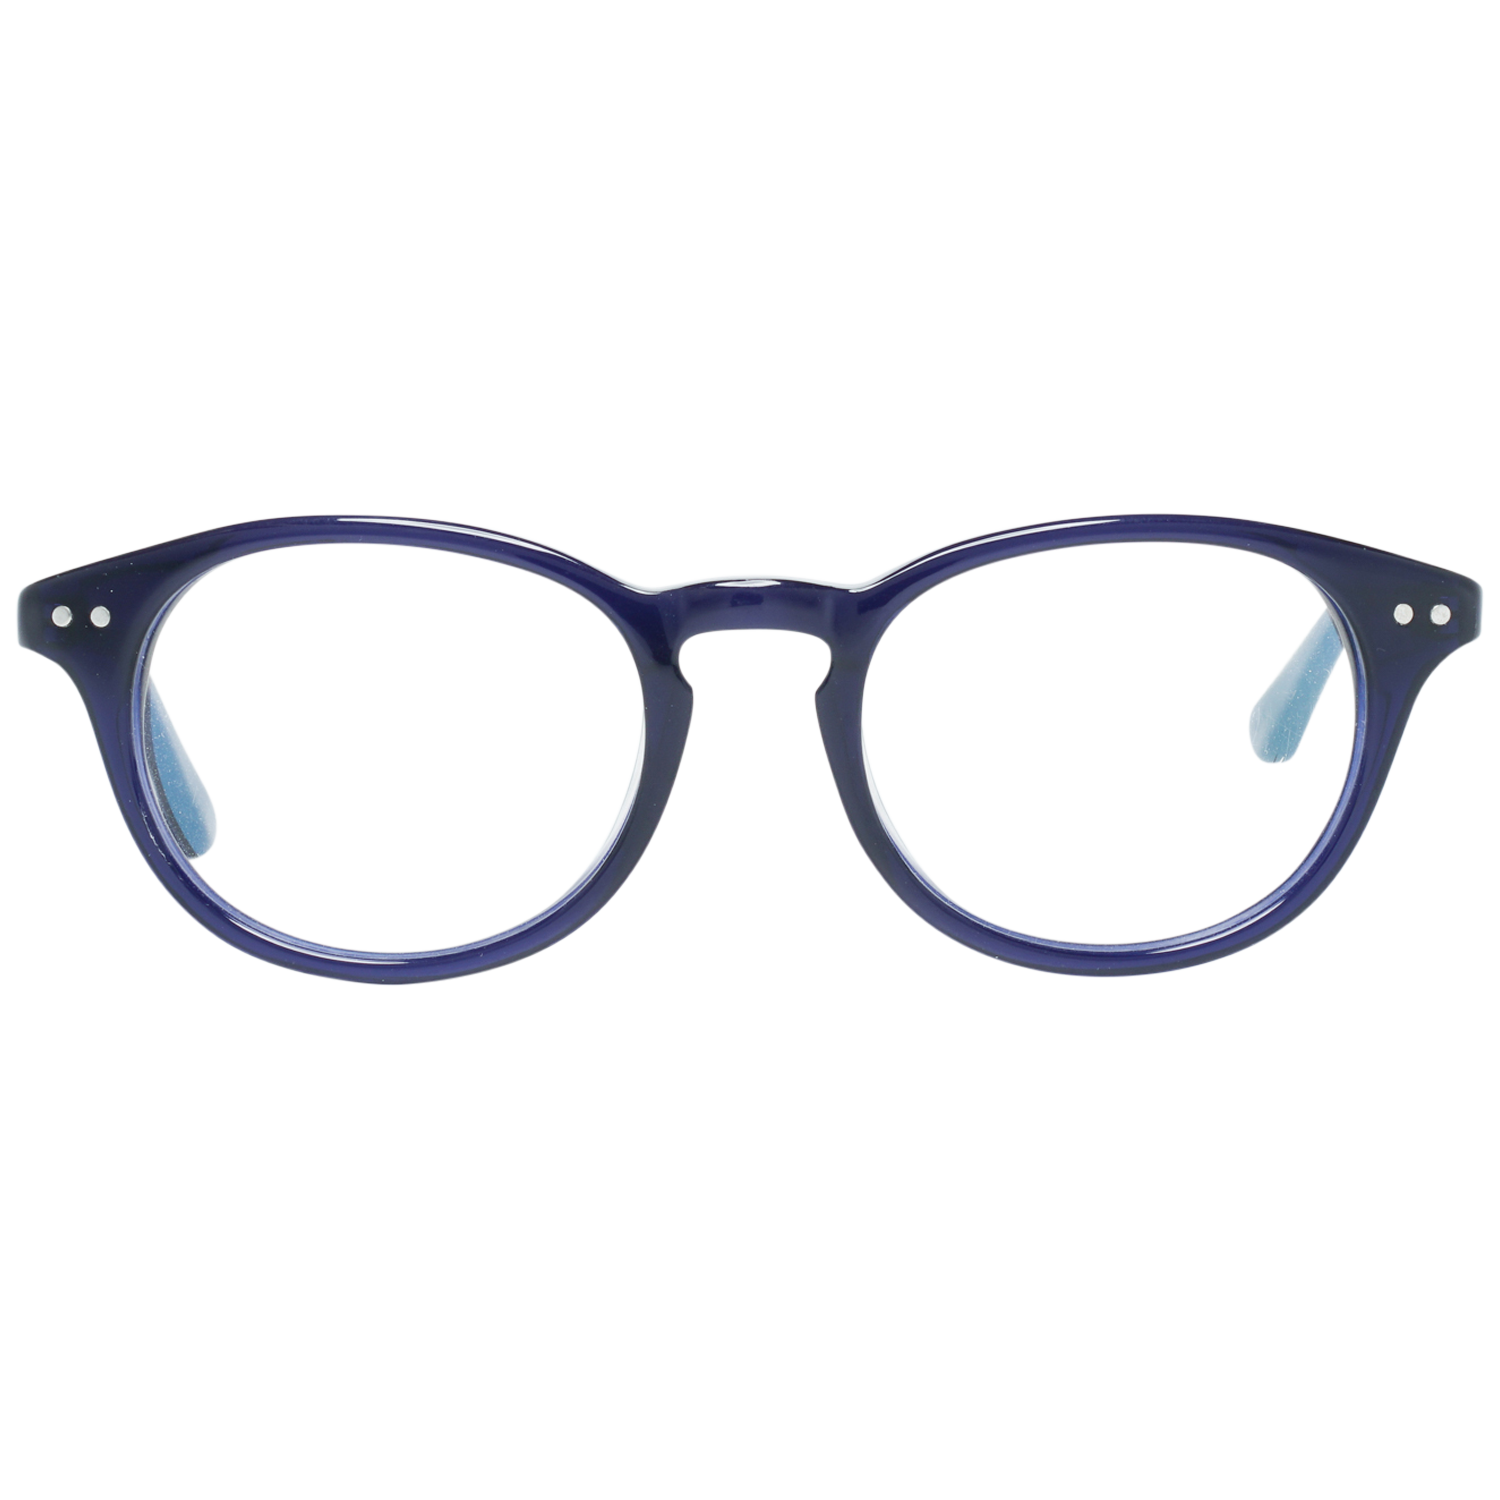 Hackett Bespoke Optical Frame HEB069 060 49 Men Blue